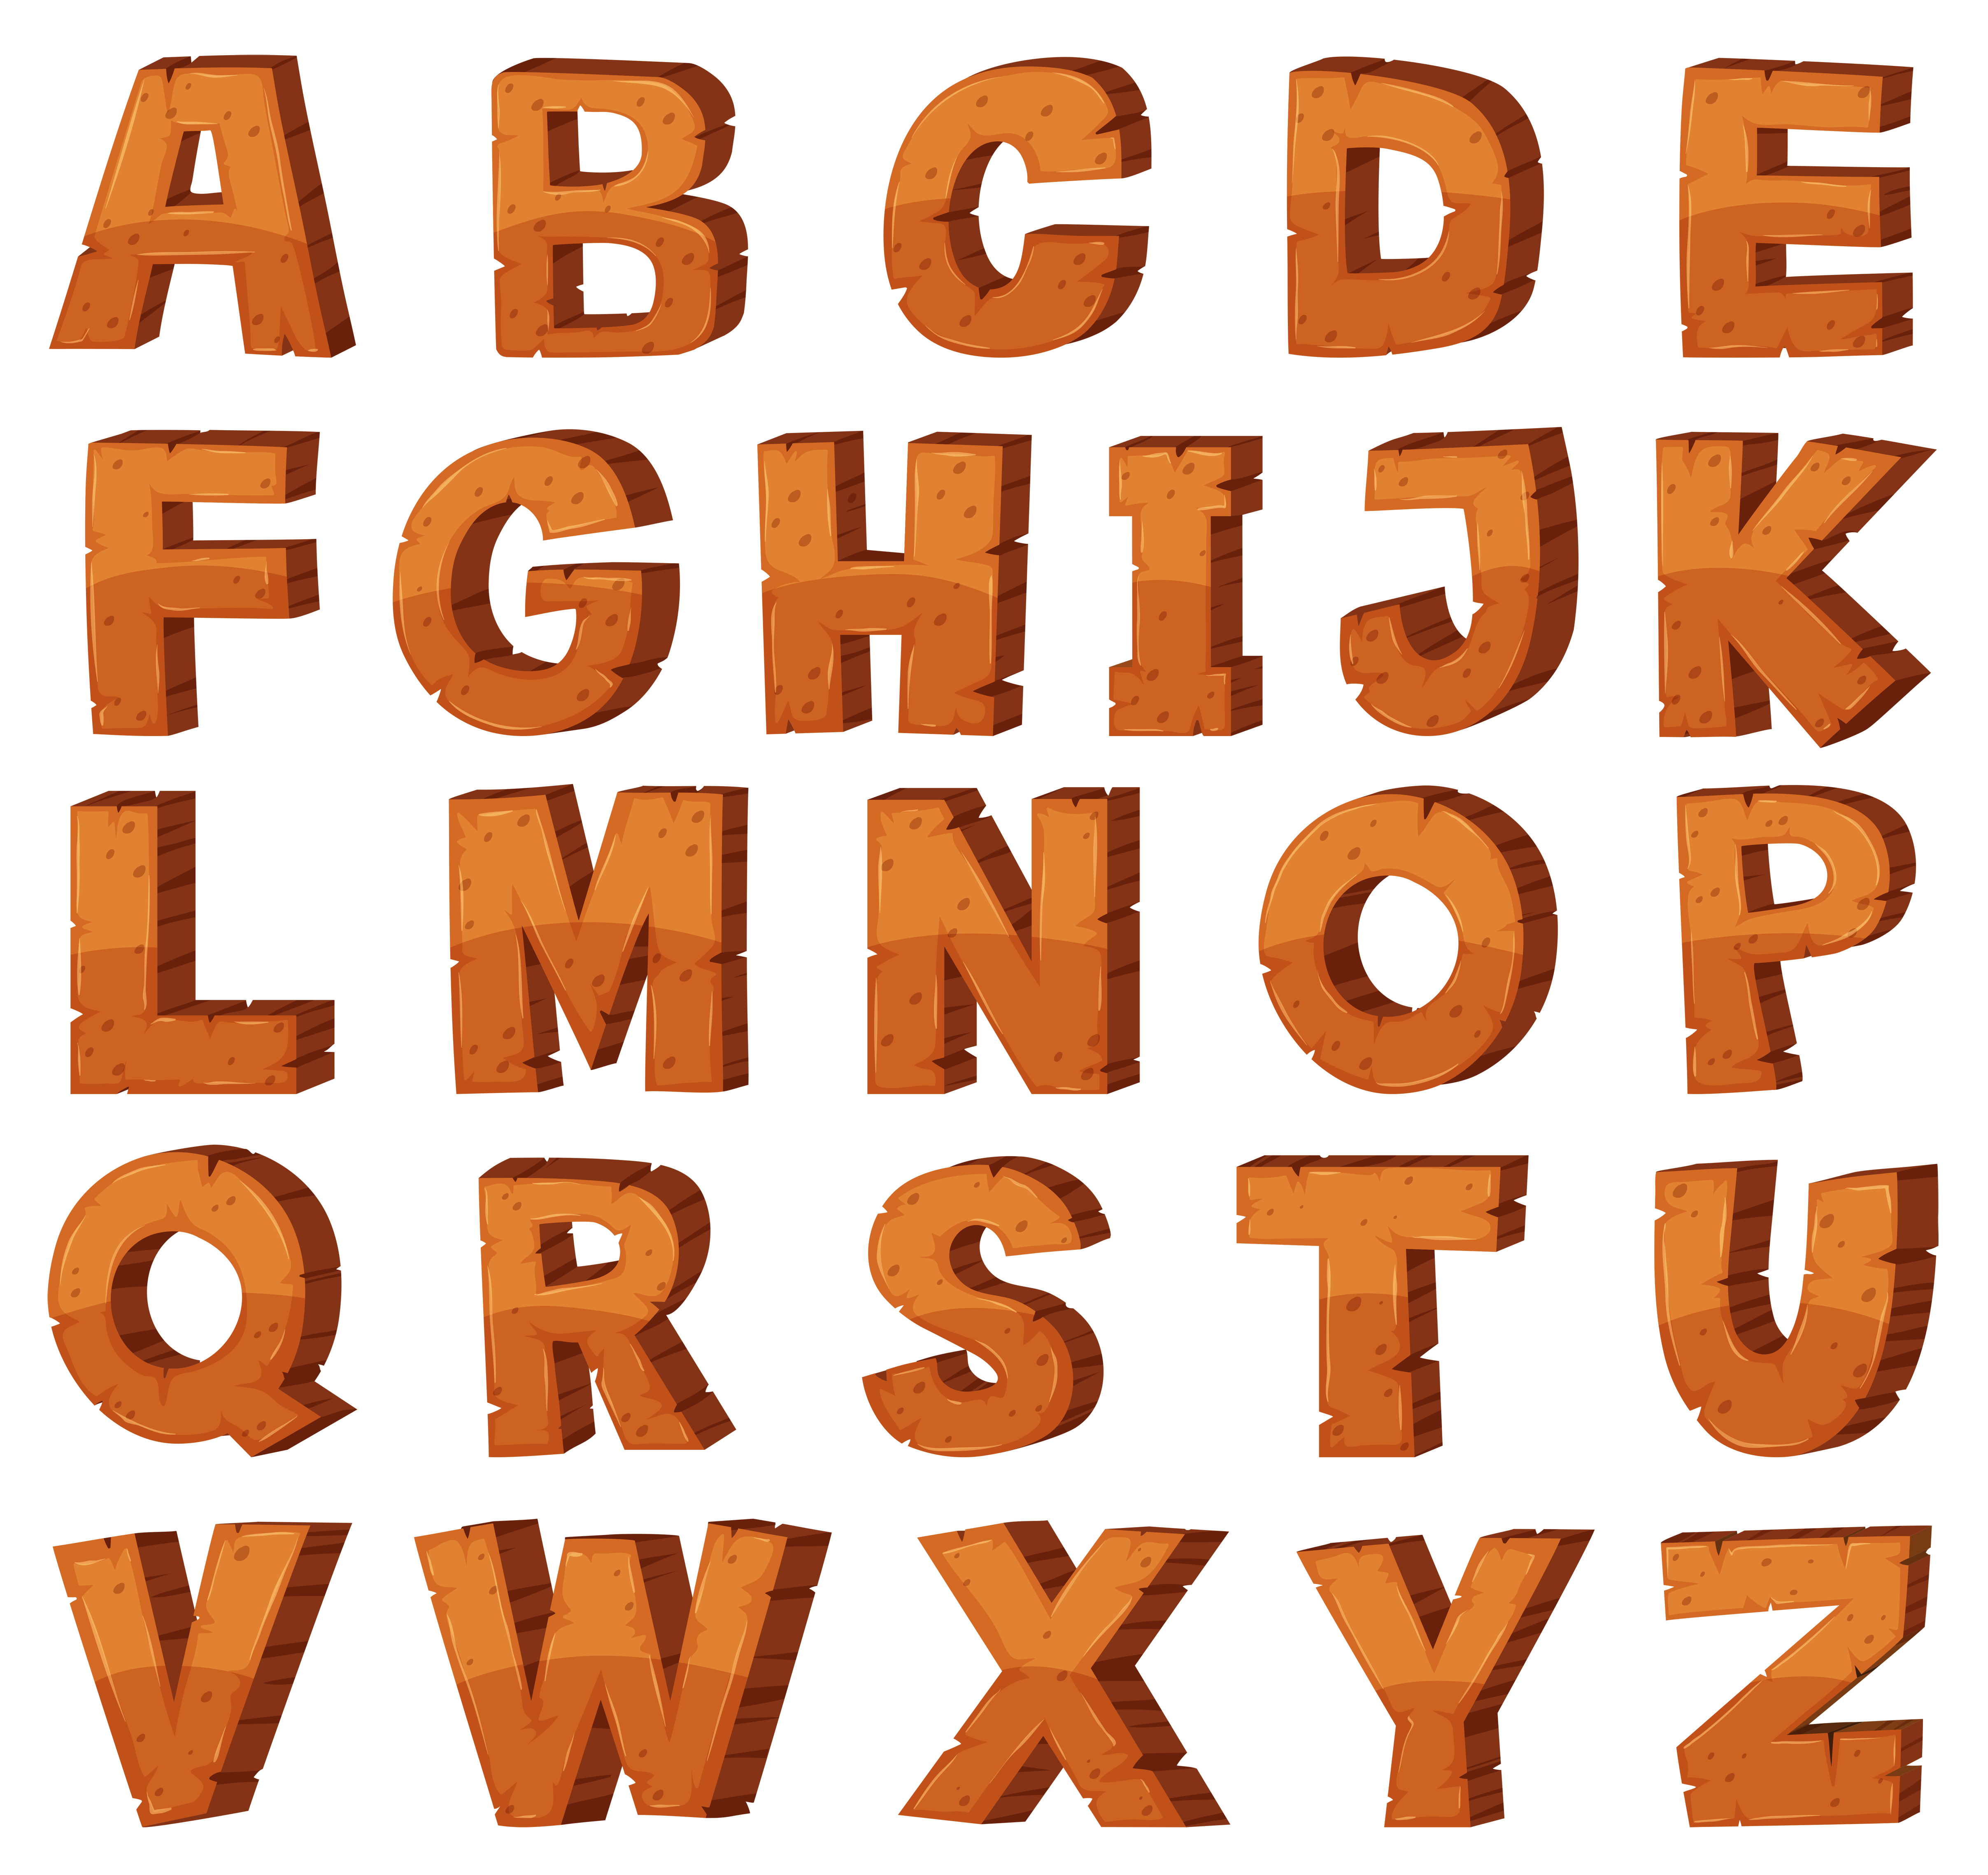 font design for english alphabets with rock texture